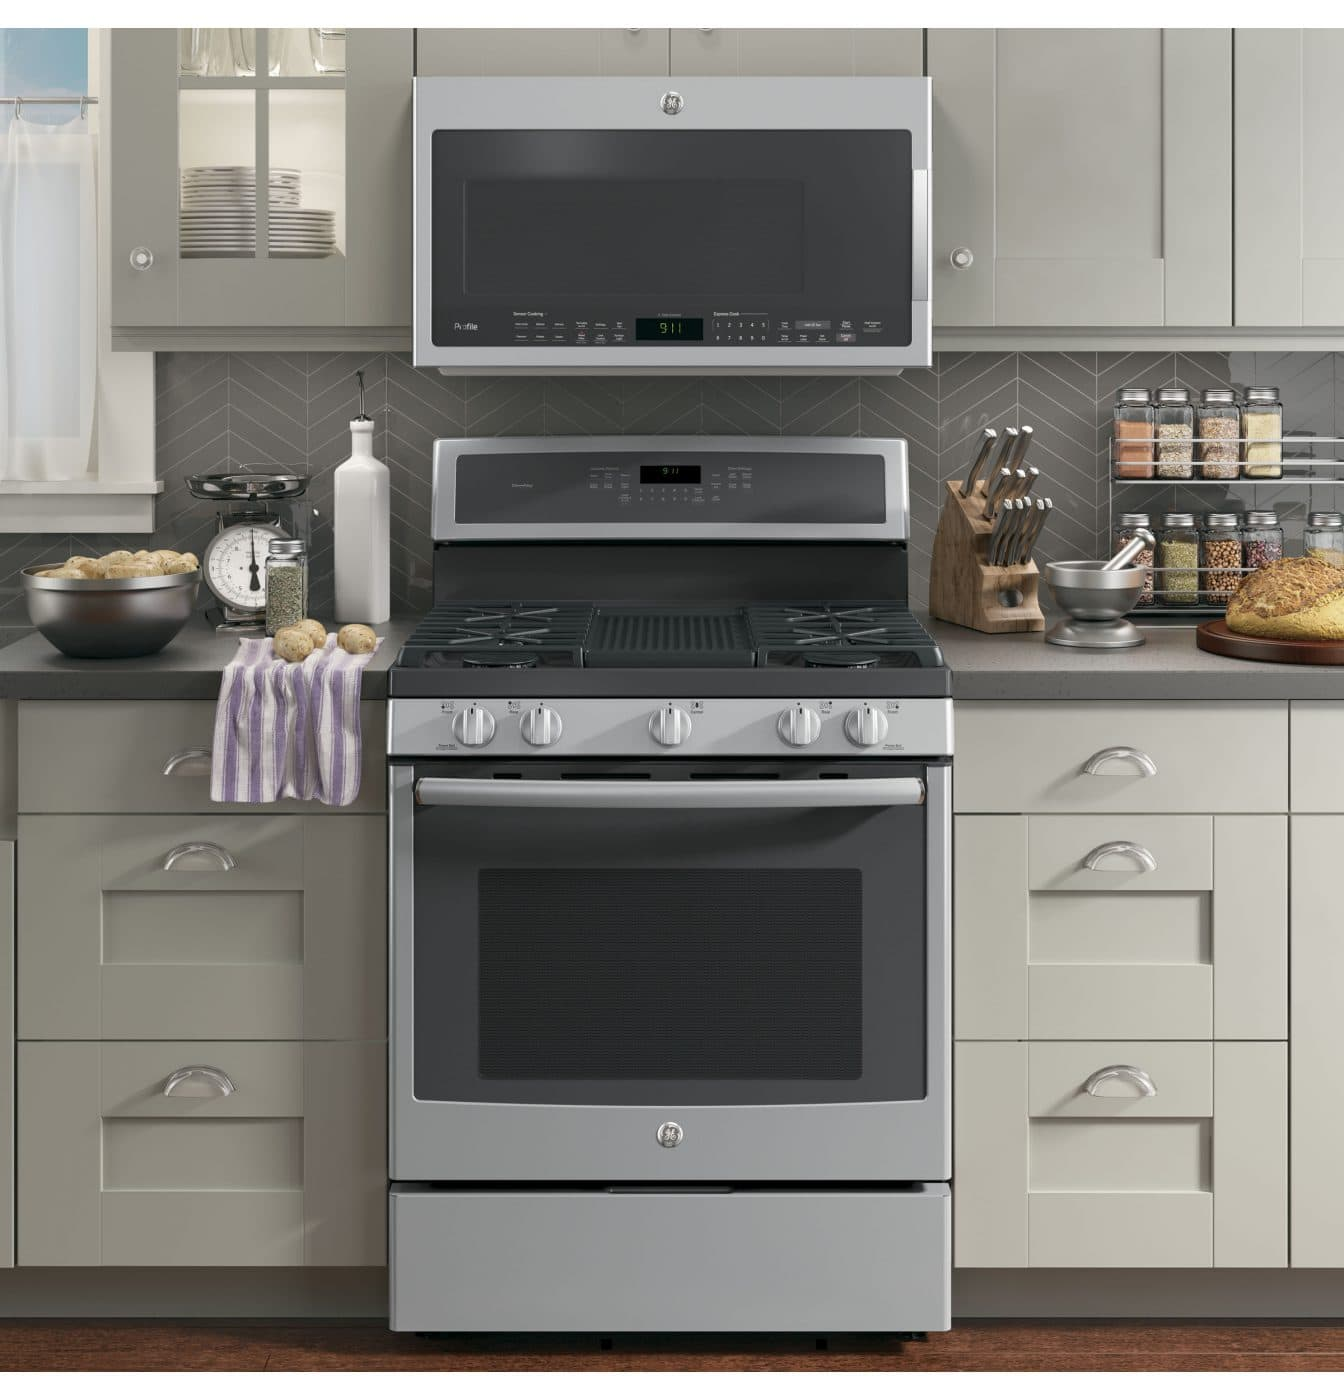 GE Profile Gas Range